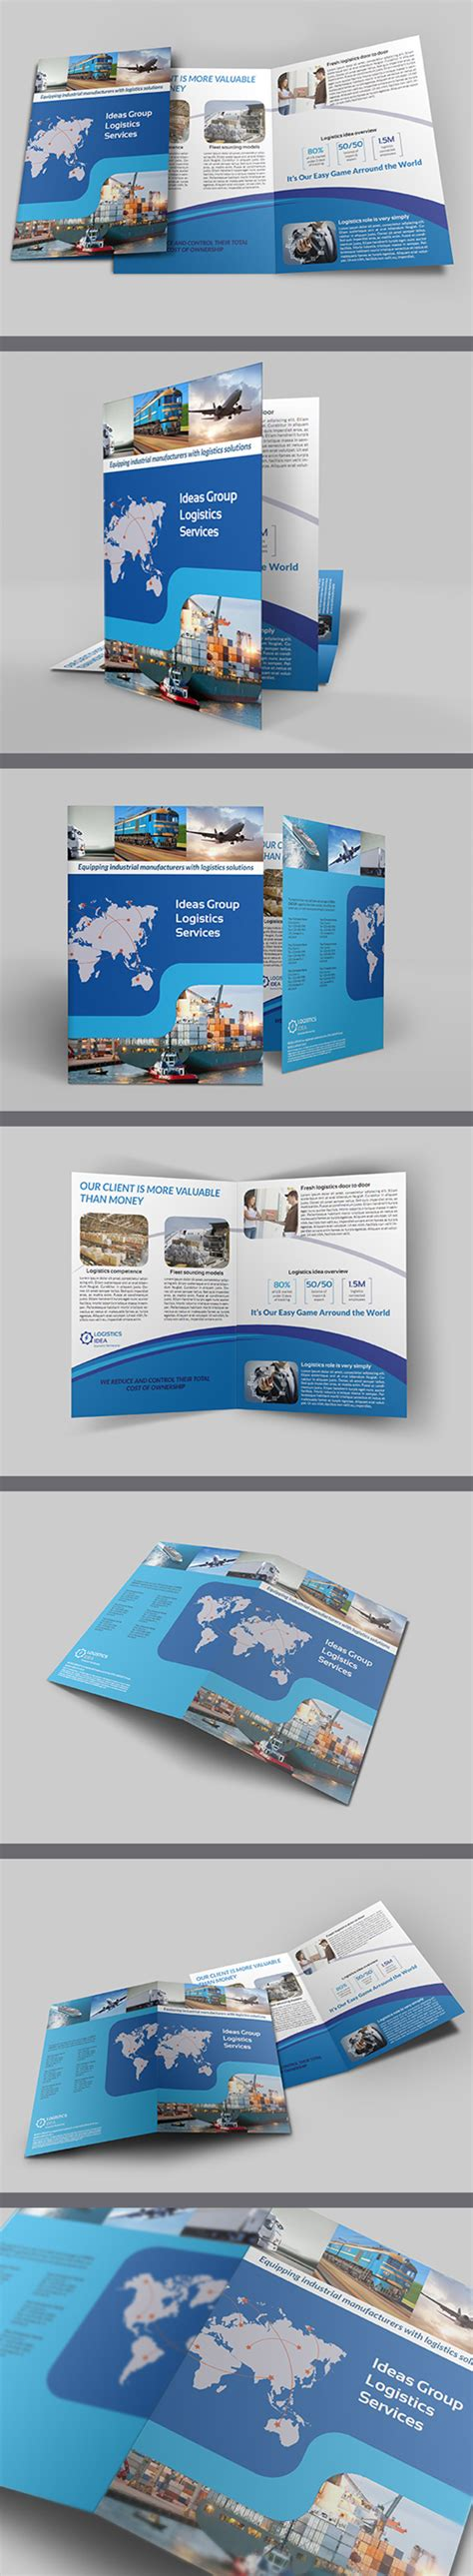 awesome corporate printable brochure designs graphics